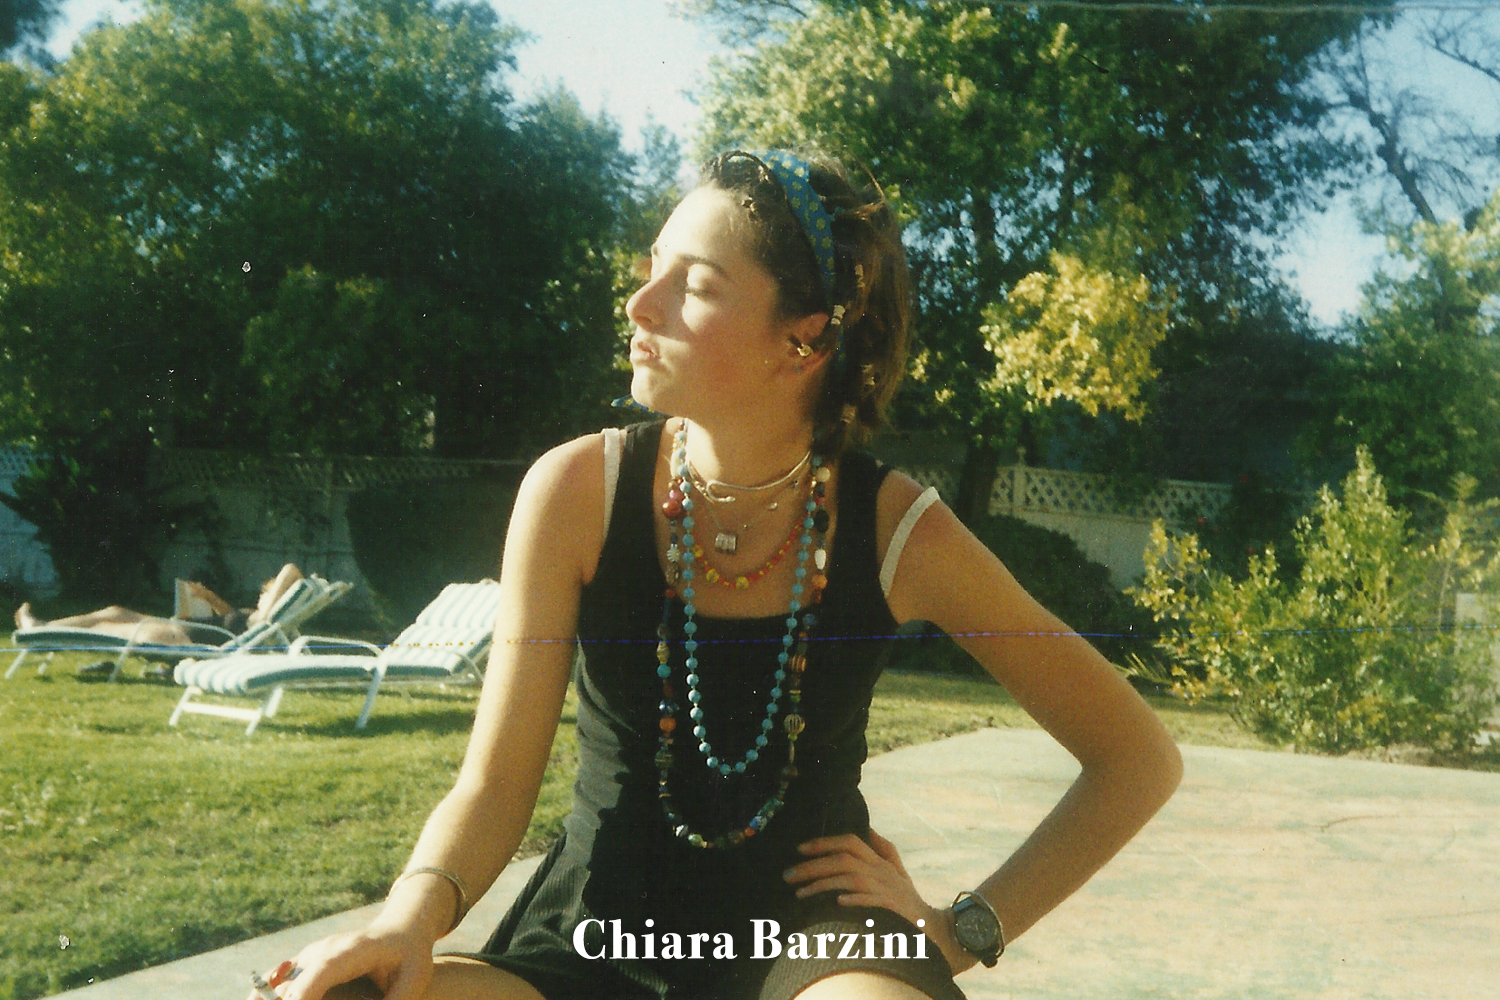 CHIARA BARZINI DOUBLE OR NOTHING